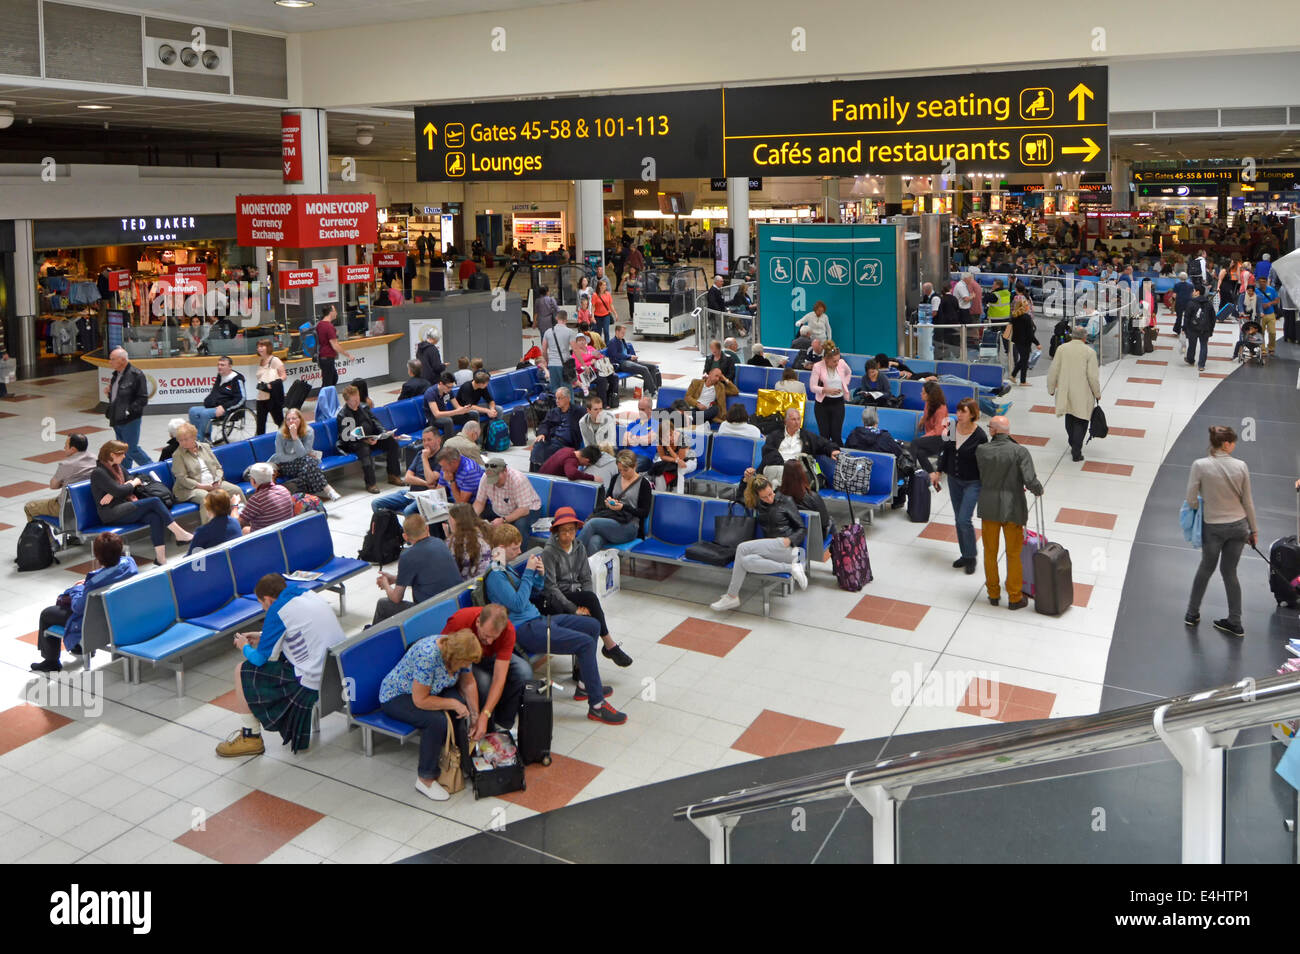 Family seating area & cafes restaurants signs at London Gatwick Airport North Terminal departure lounge and - Stock Image